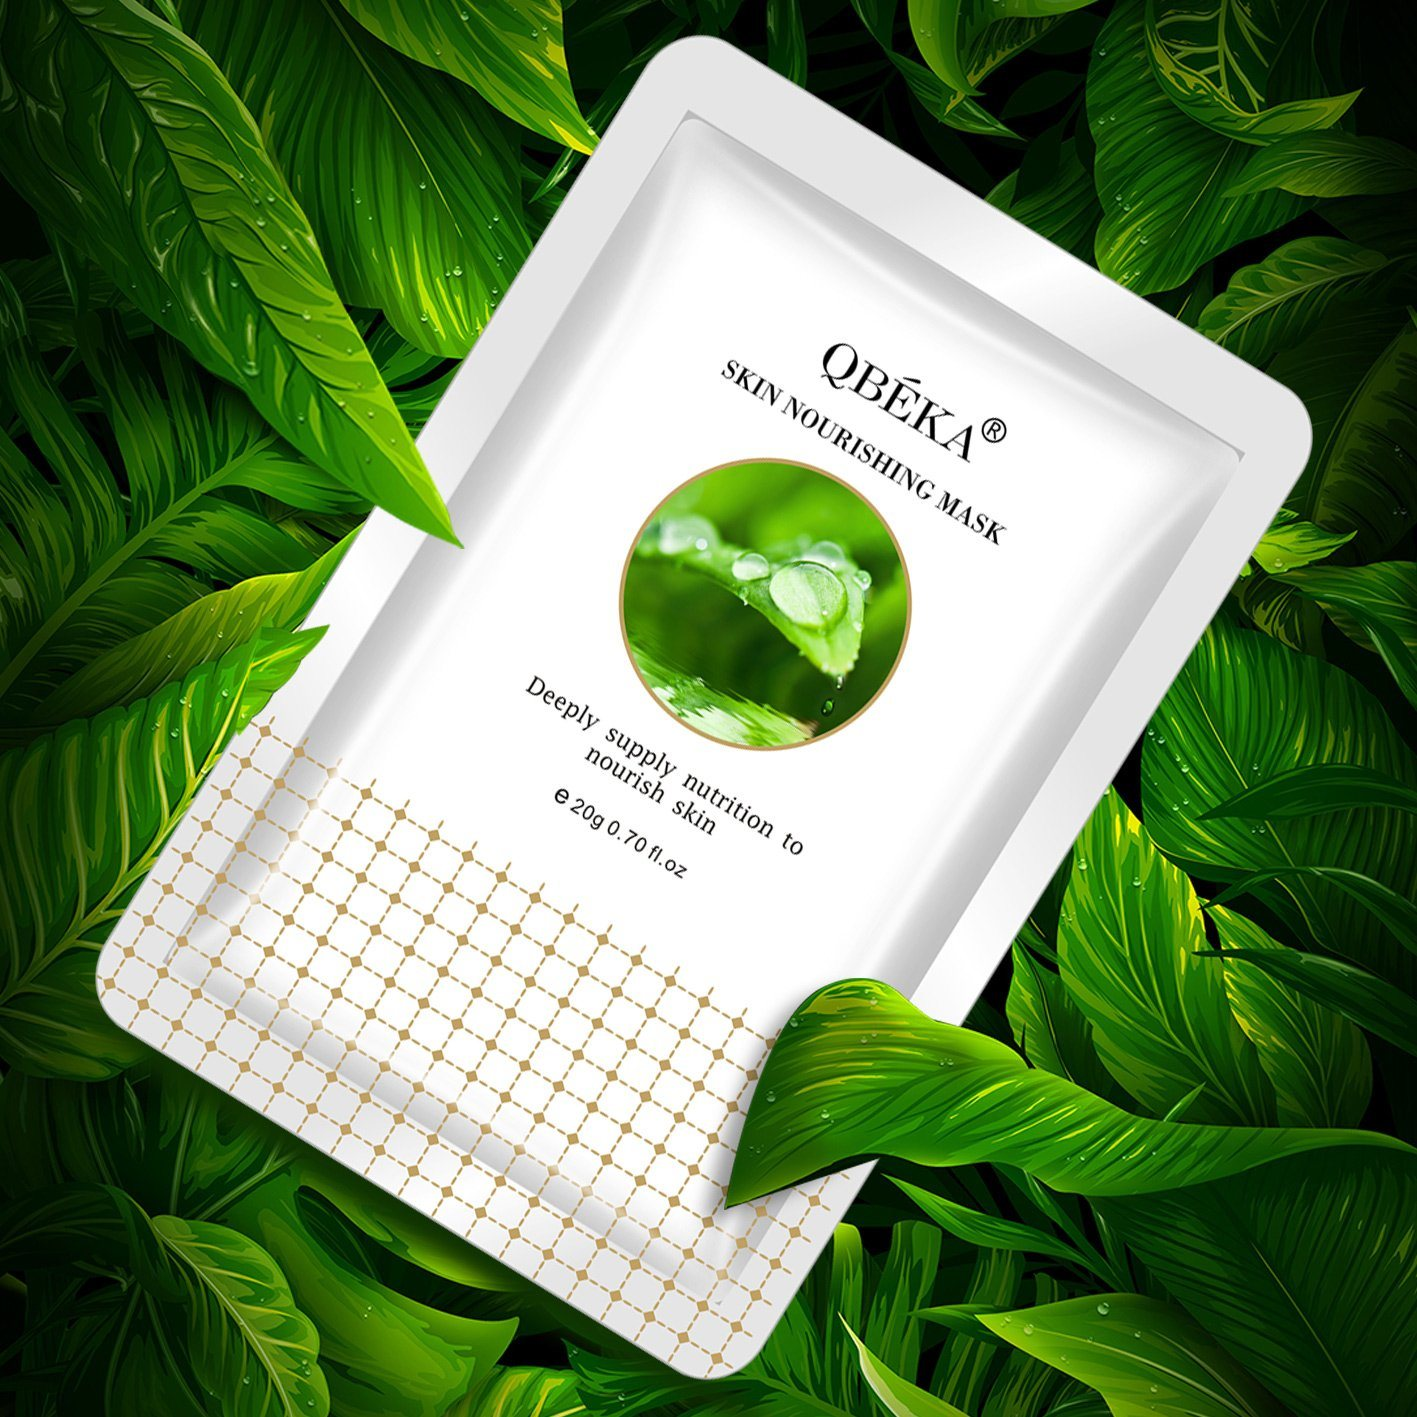 OEM Skin Nourishing Mask Gold Collagen Face Mask Face Whitening Mask